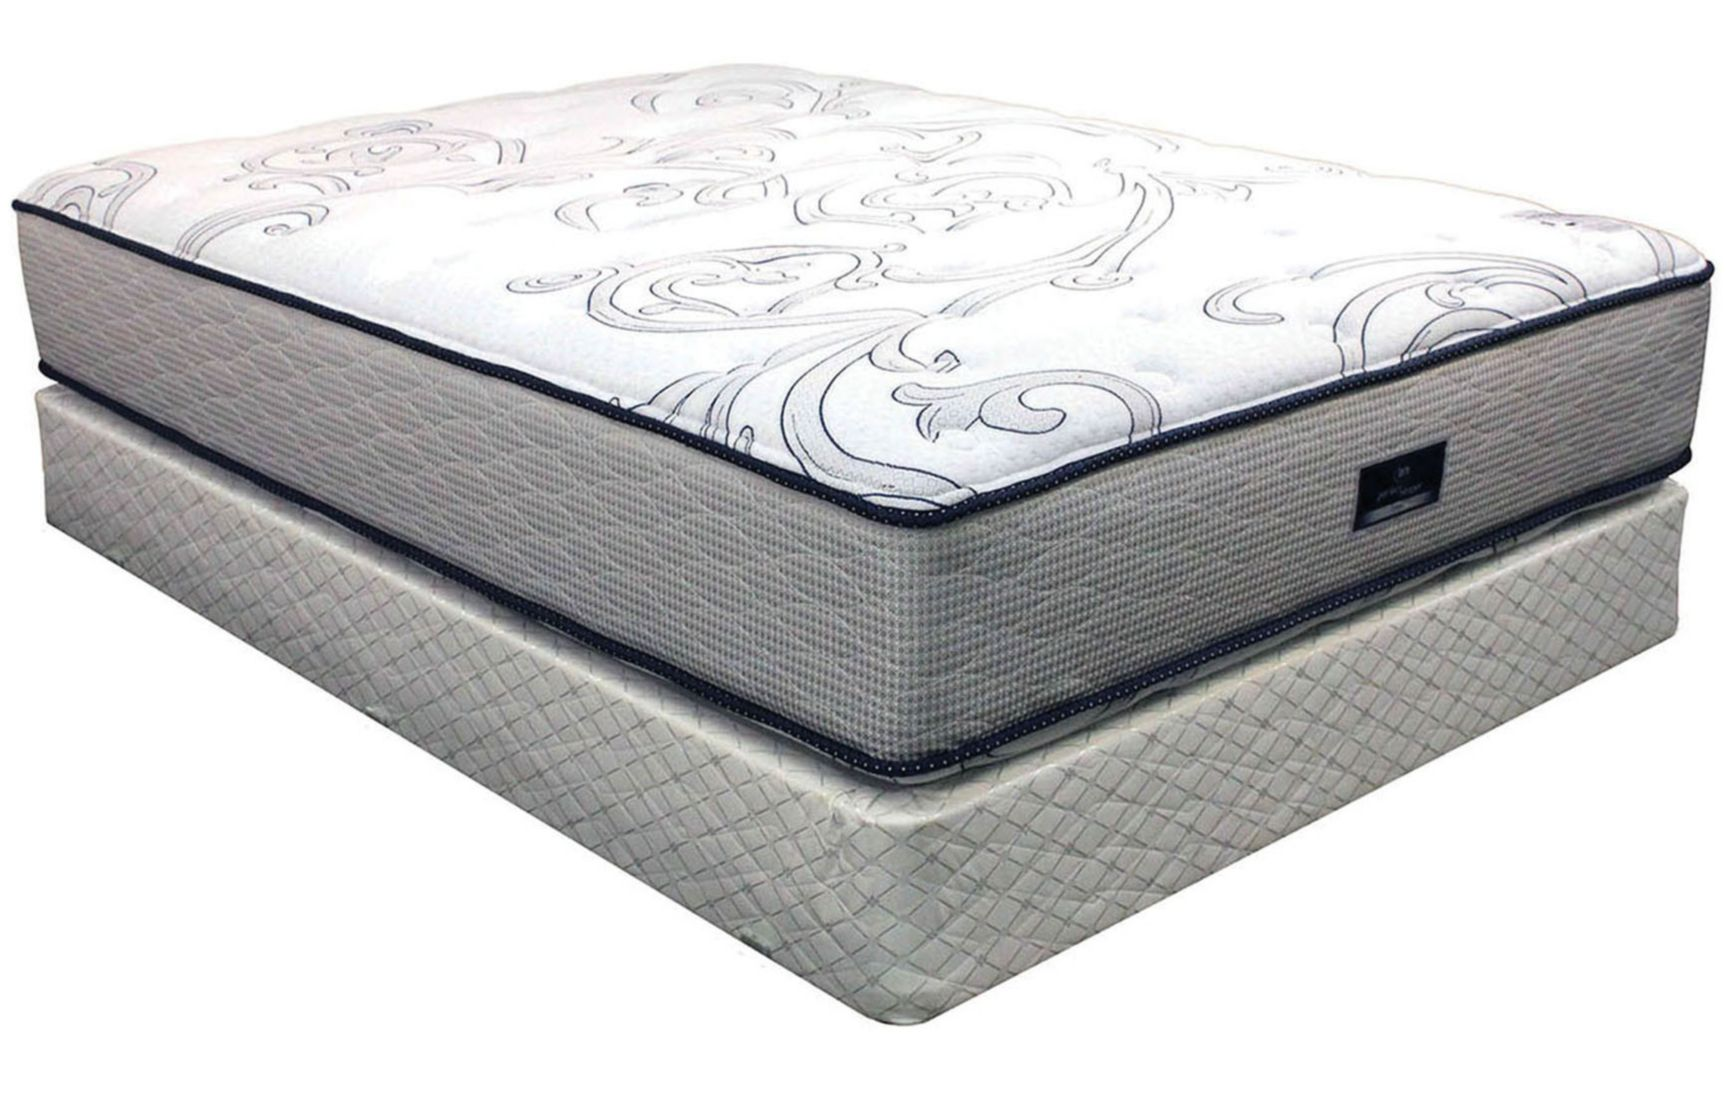 Serta Perfect Sleeper Hotel Chateau Plush Mattress